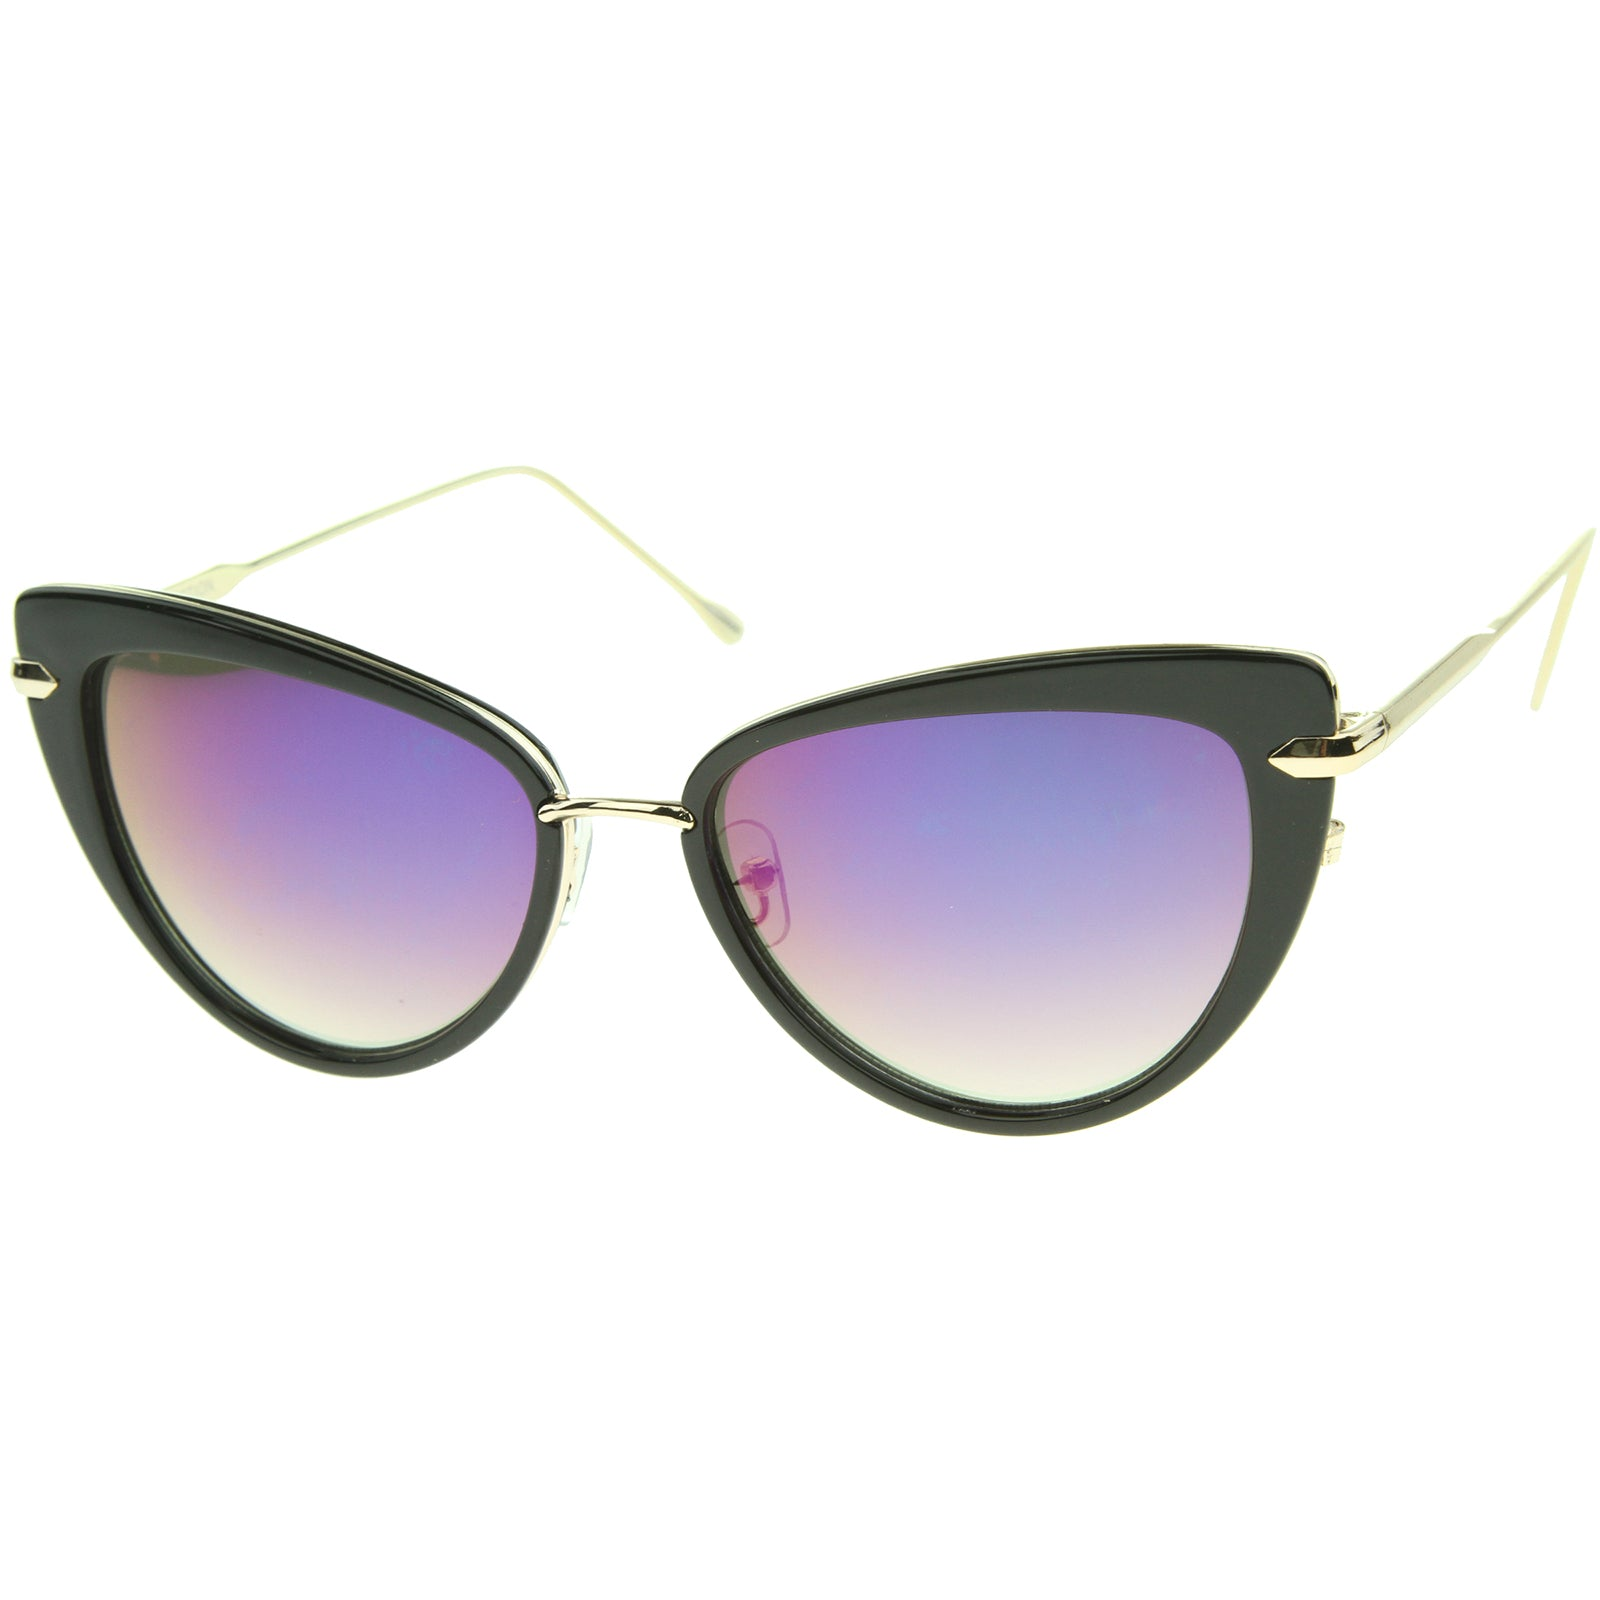 Women's High Fashion Metal Temple Super Cat Eye Sunglasses 55mm - sunglass.la - 2